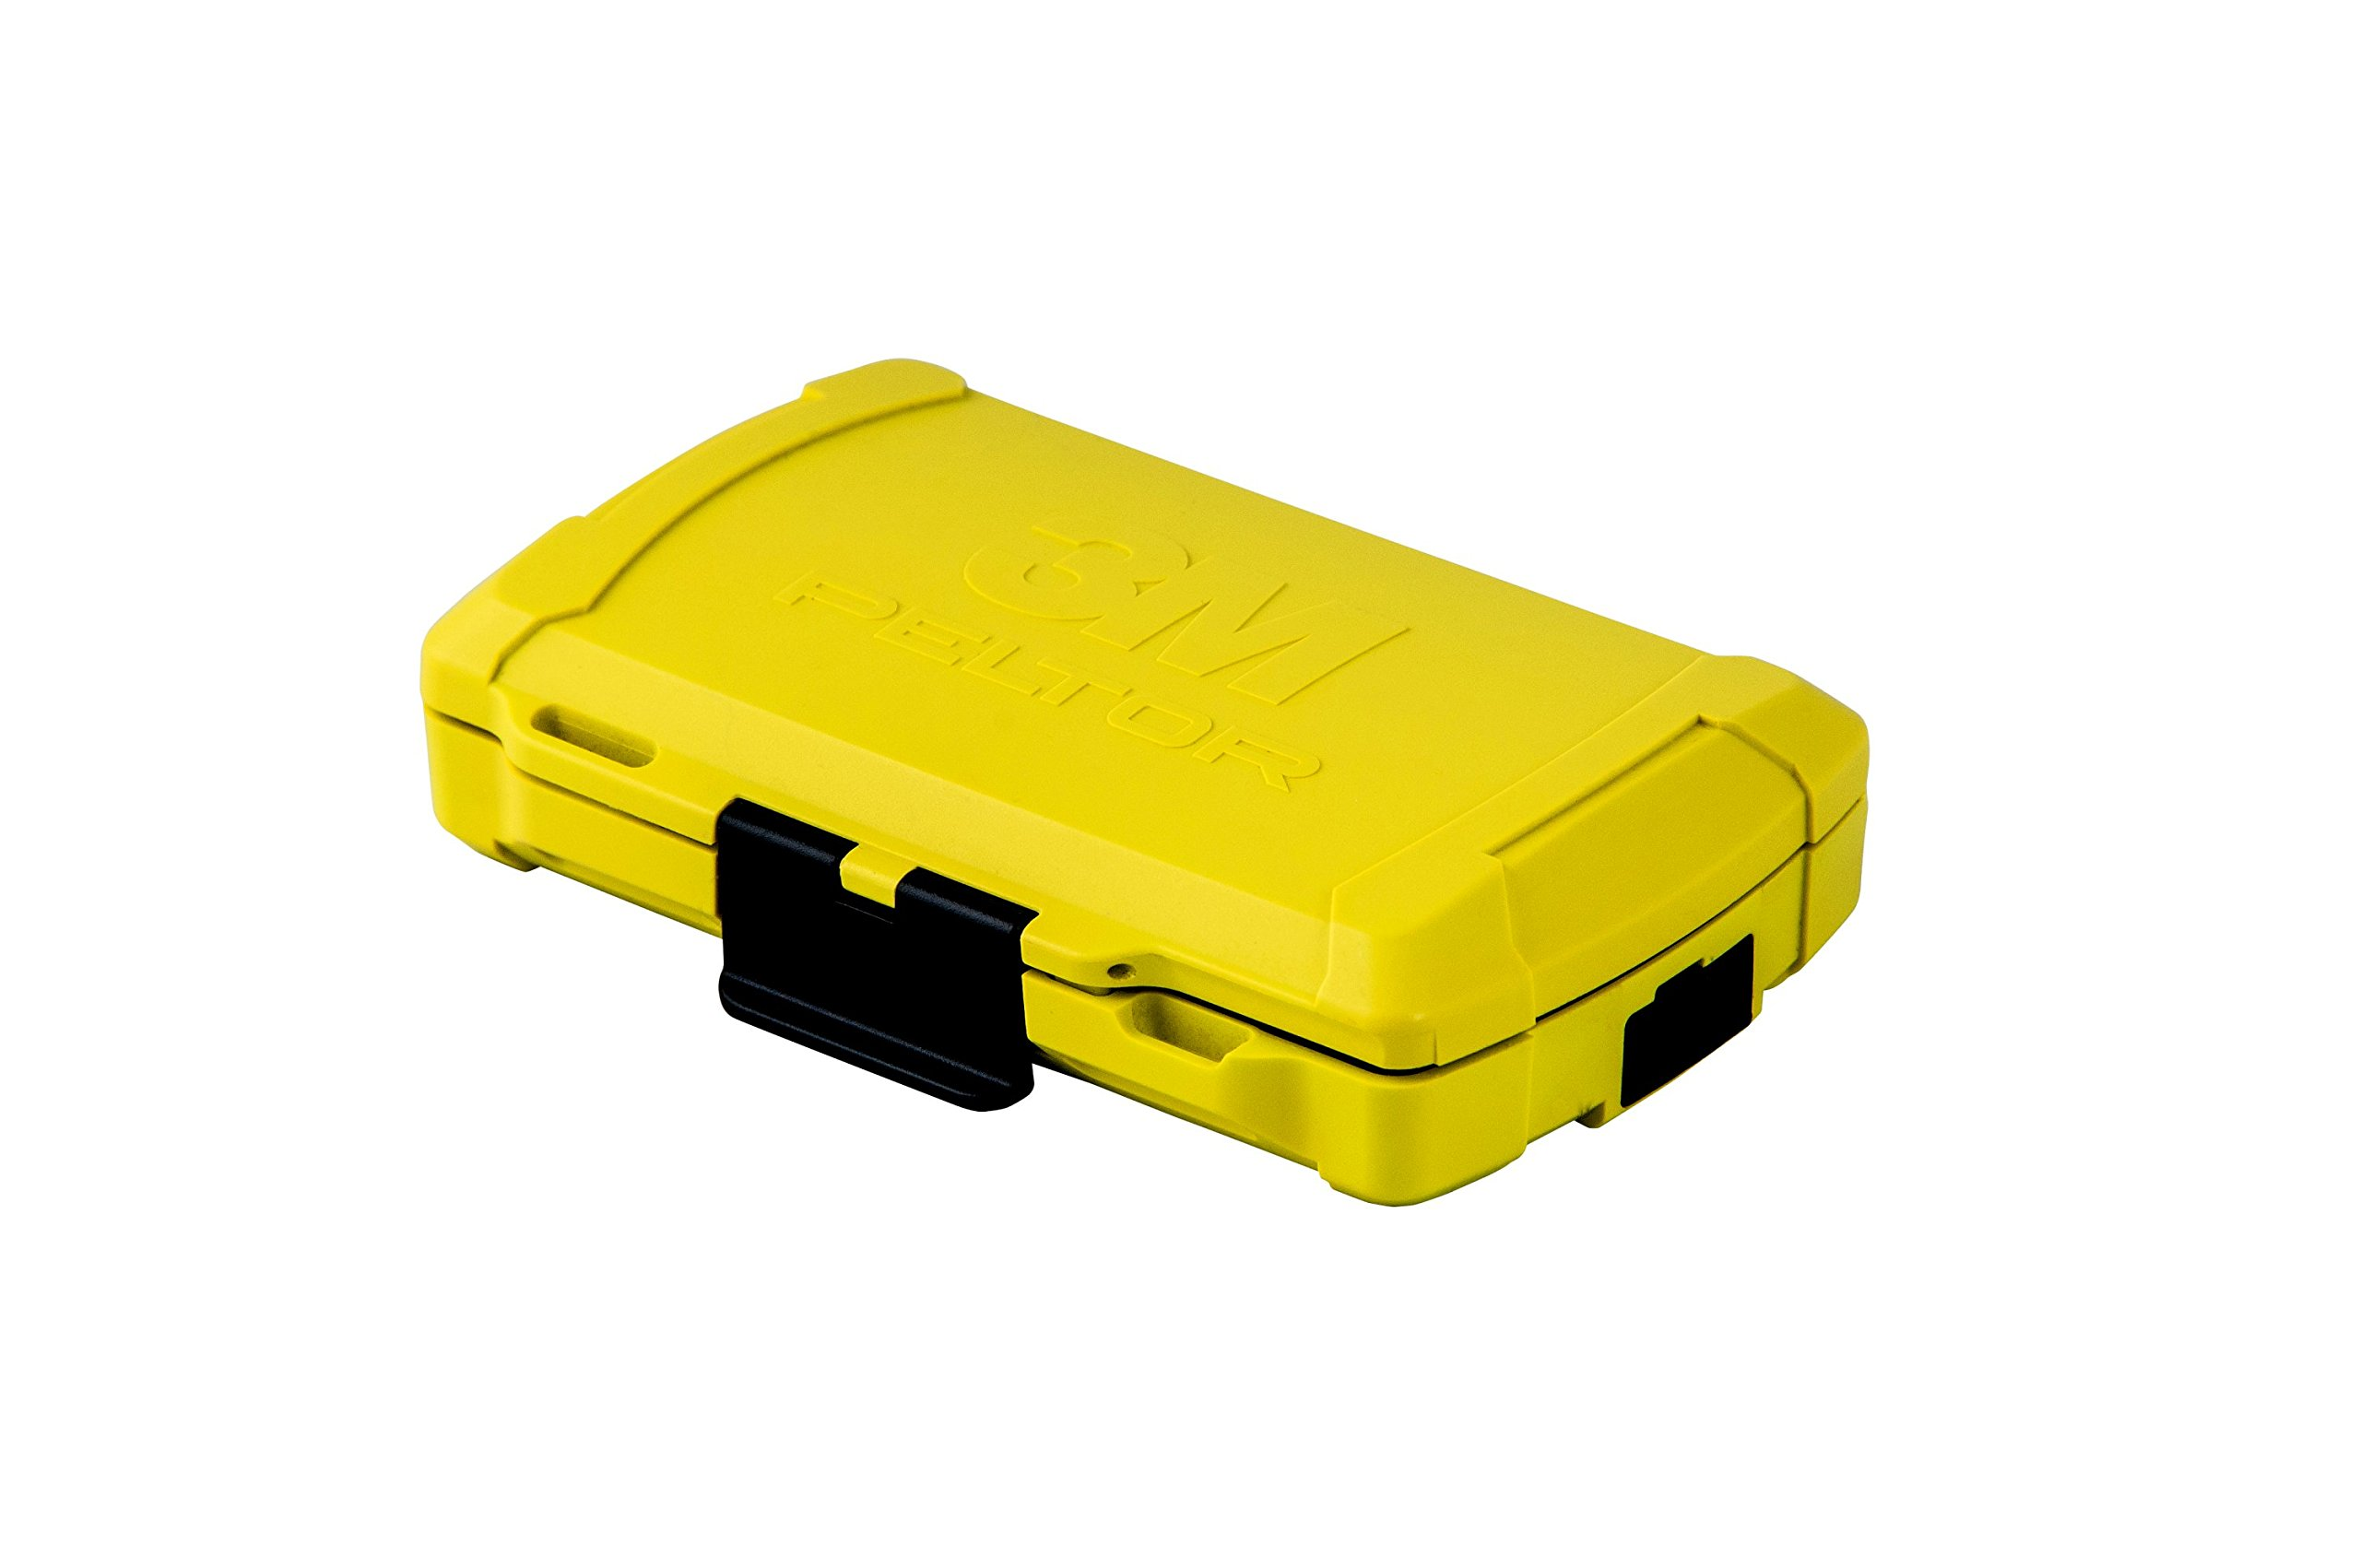 3M PELTOR 67071 Yellow LEP-100/200 Replacement Charging Case – IP54